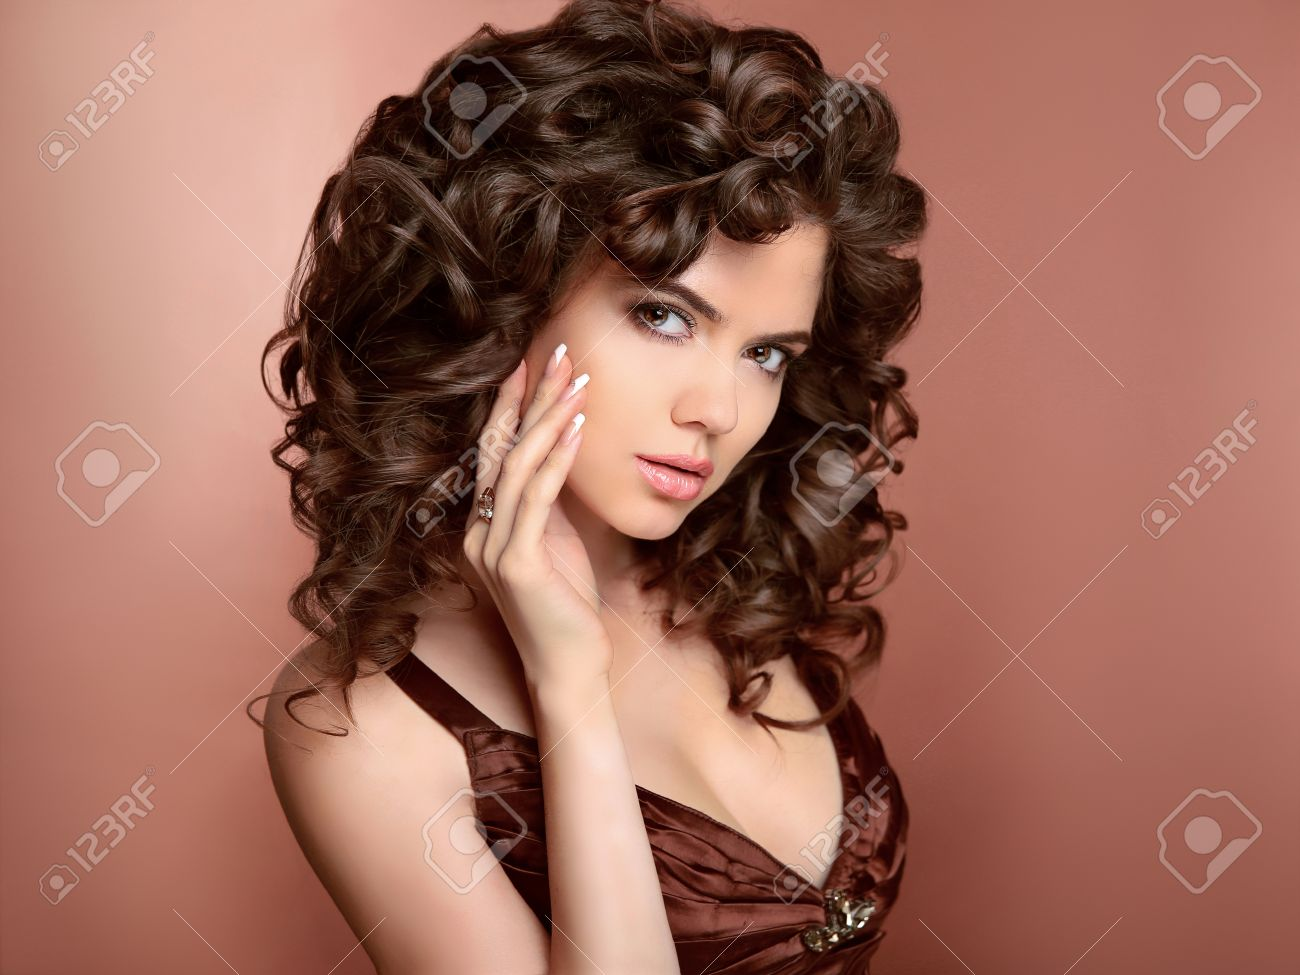 Hairstyle. Beautiful Young Woman With Long Curly Hair, Beauty ...